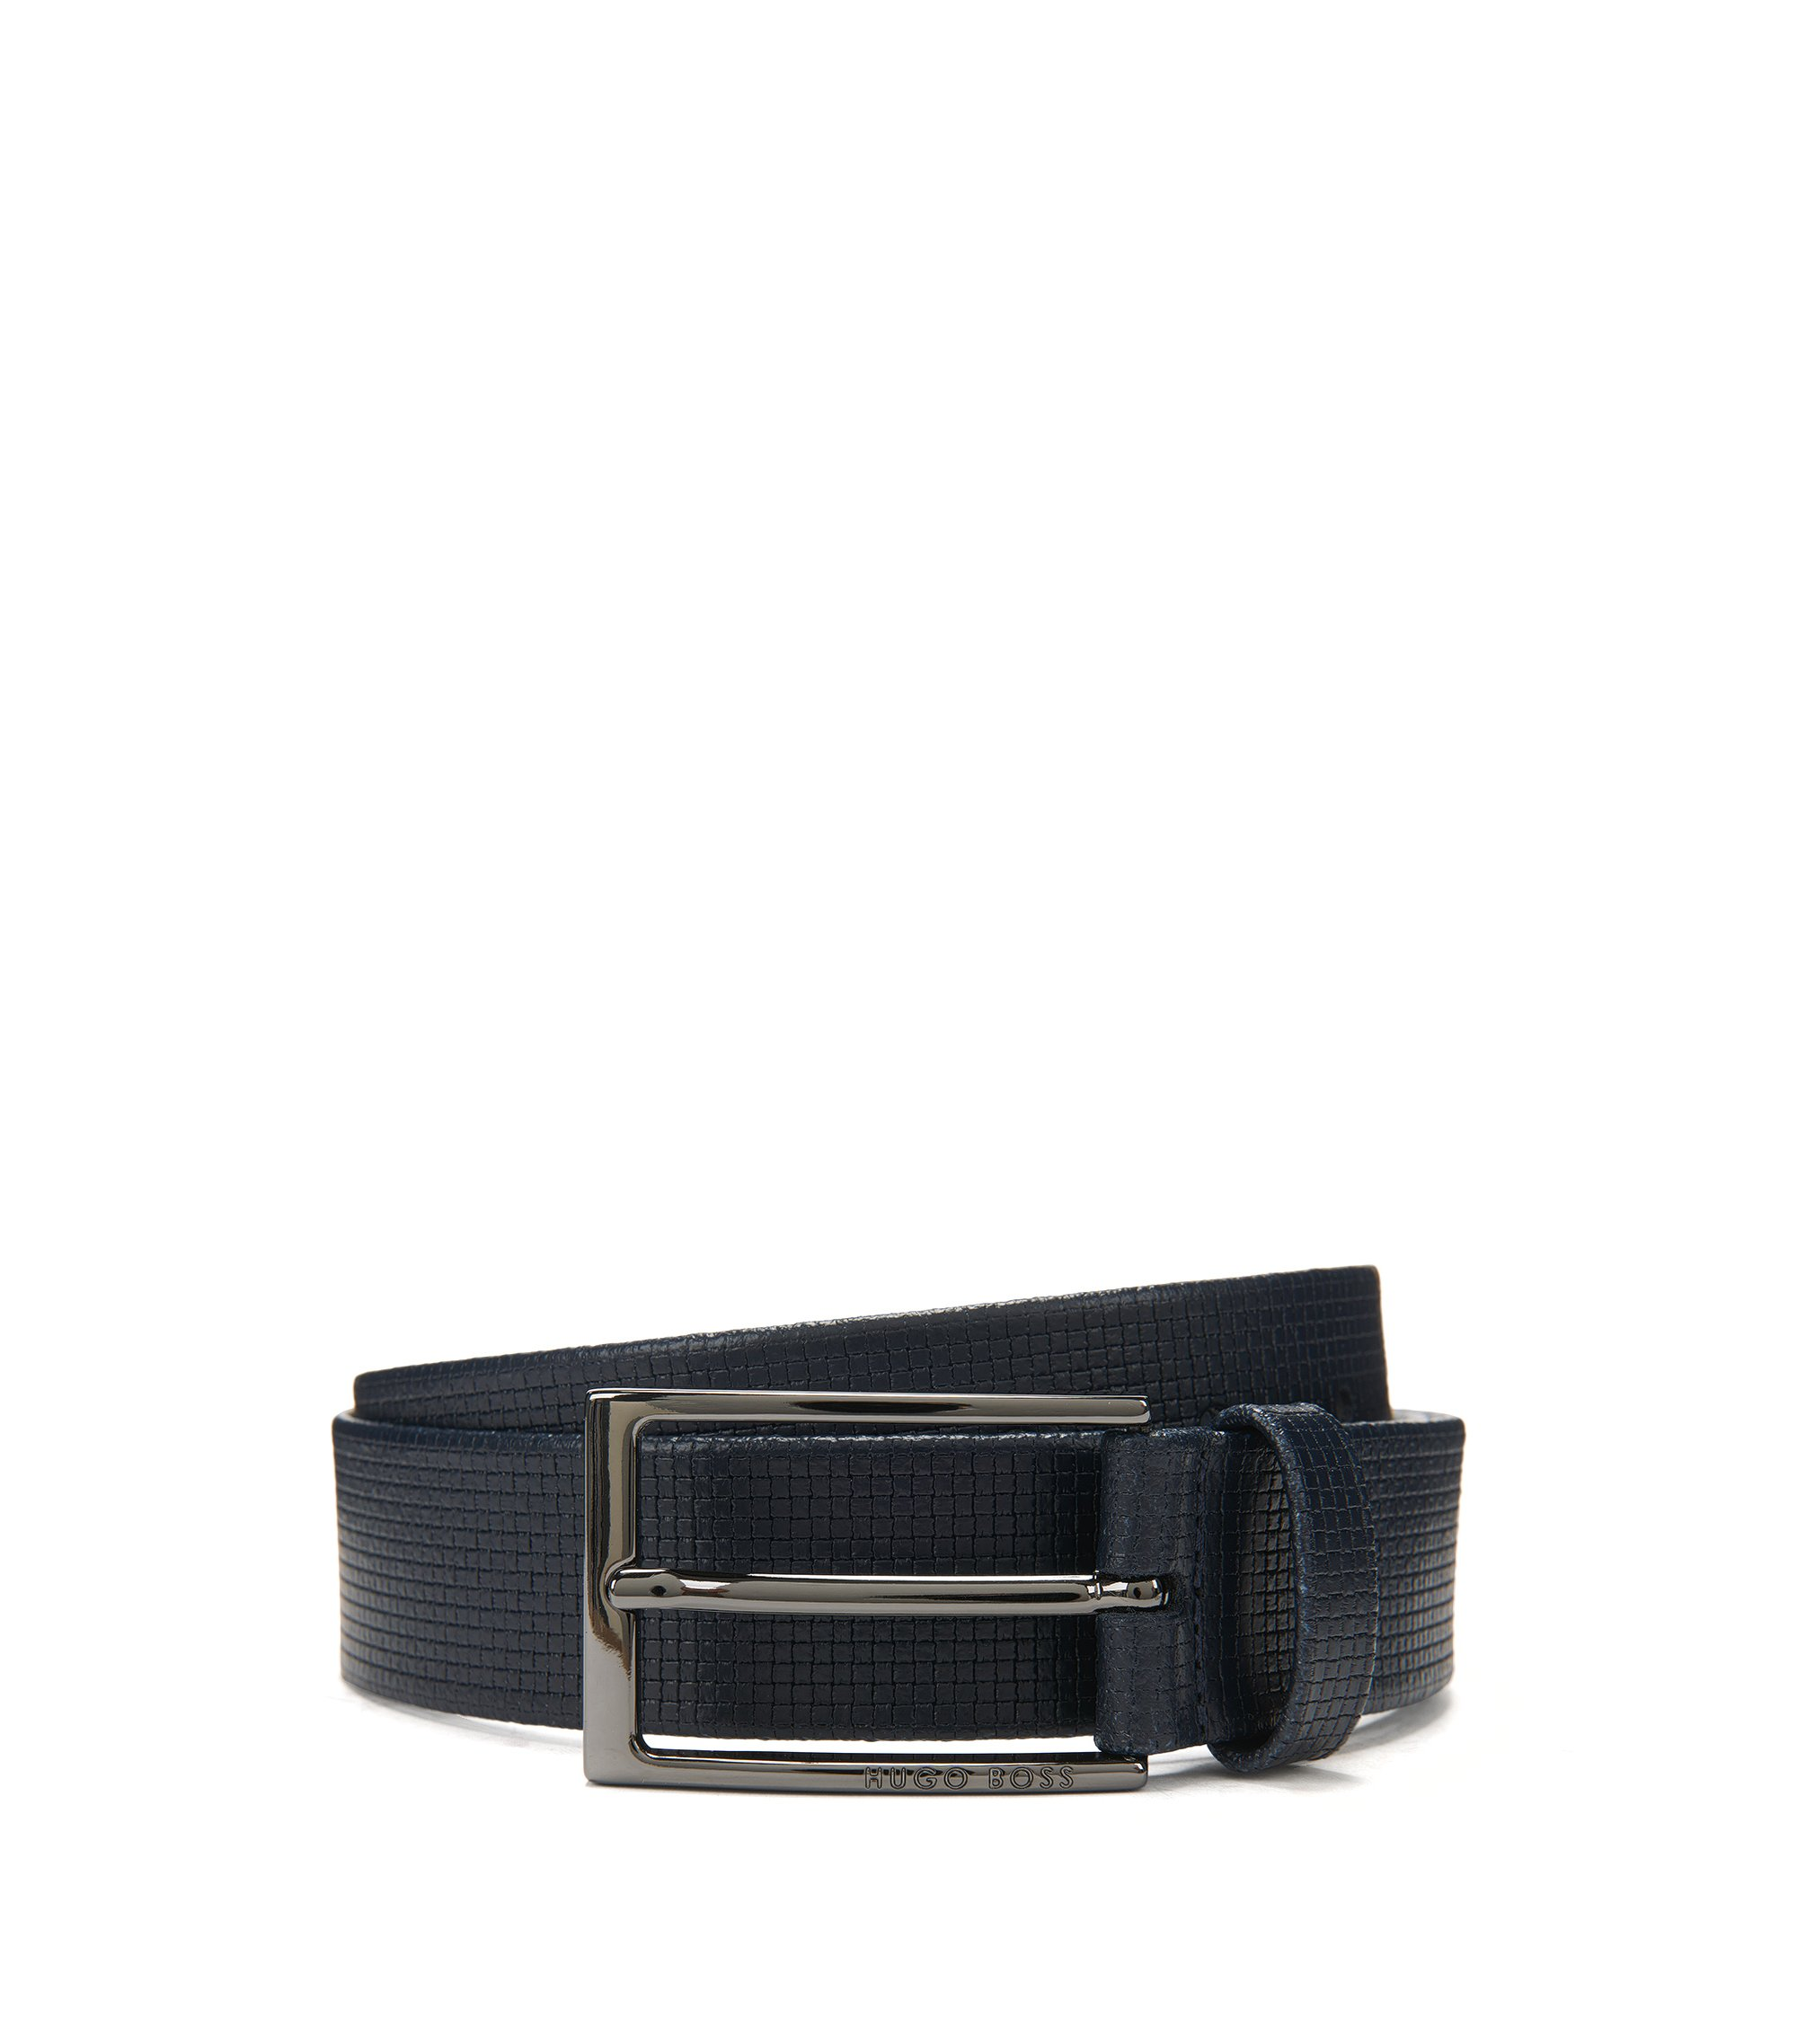 Basketweave-Embossed Leather Belt | Clauxy, Dark Blue